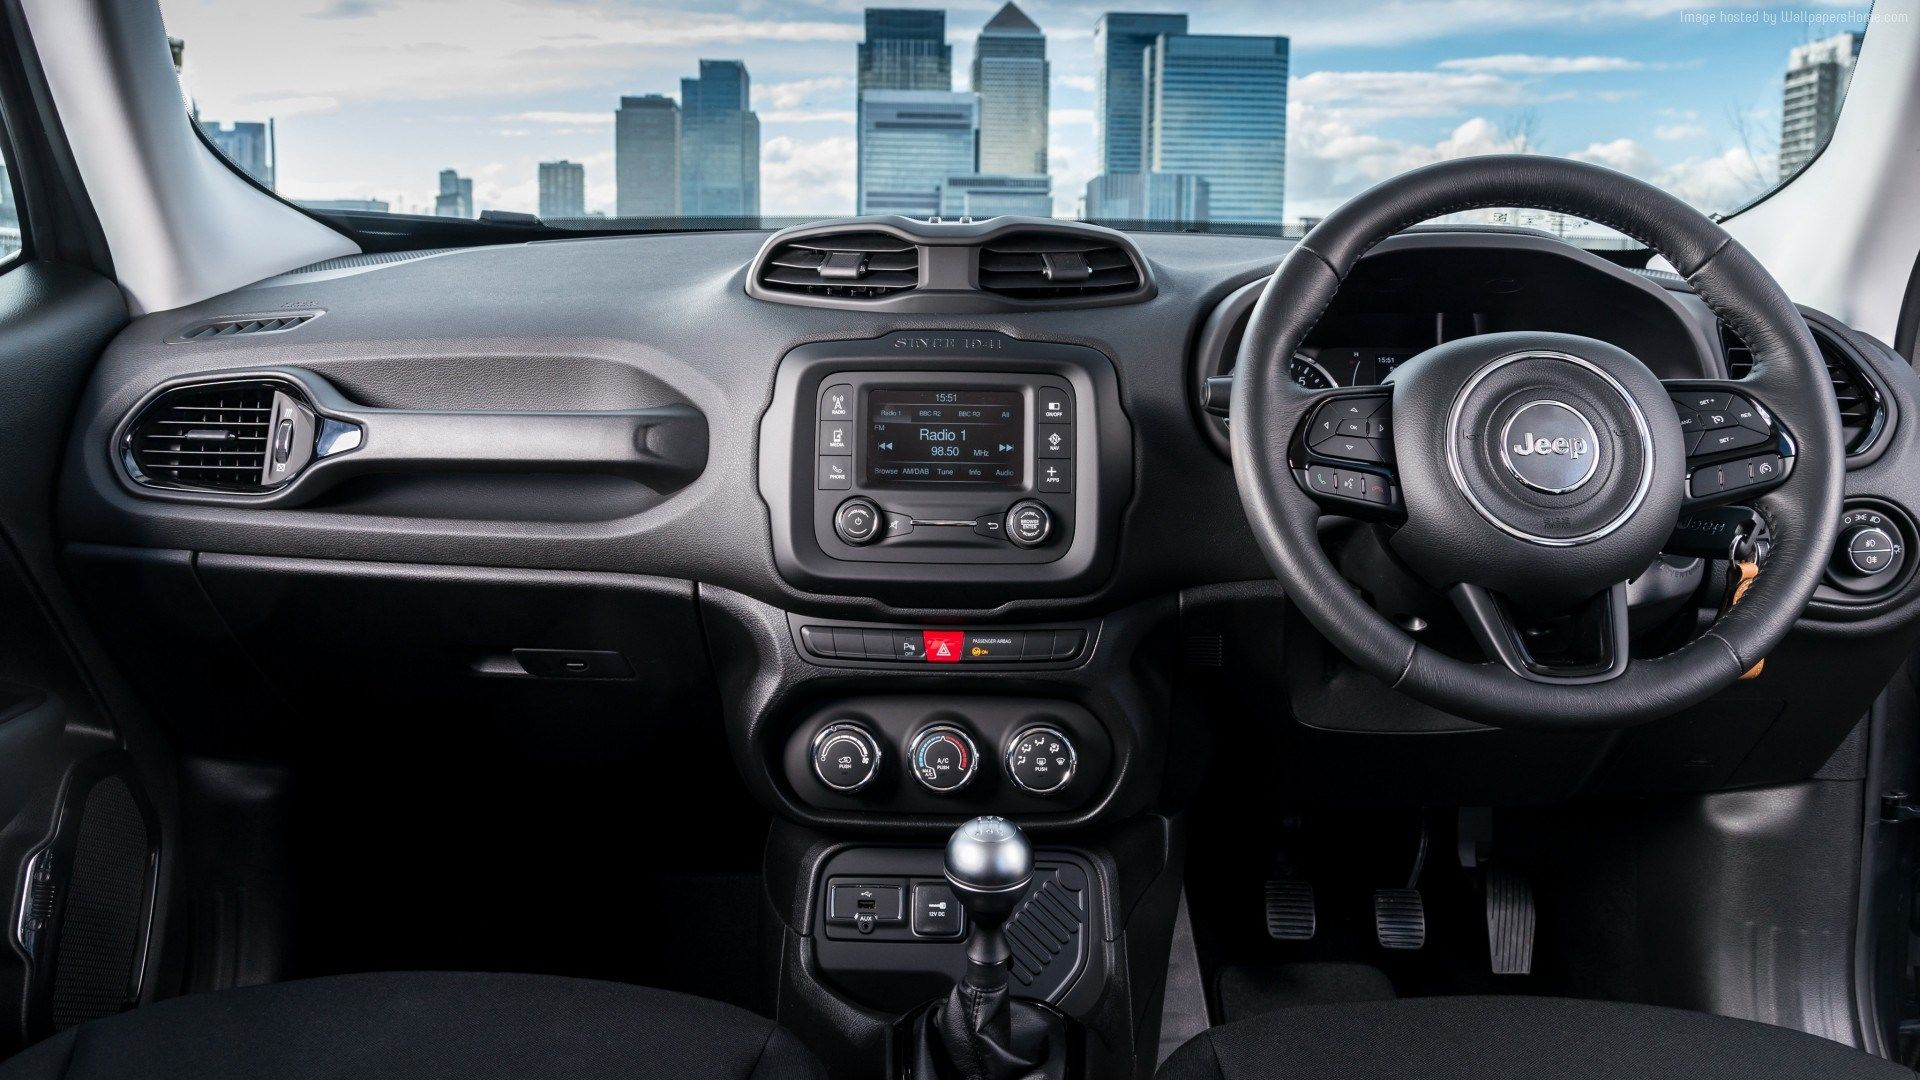 Jeep Renegade Quotdawn Of Justice Wallpaper Jeep Renegade Jeep